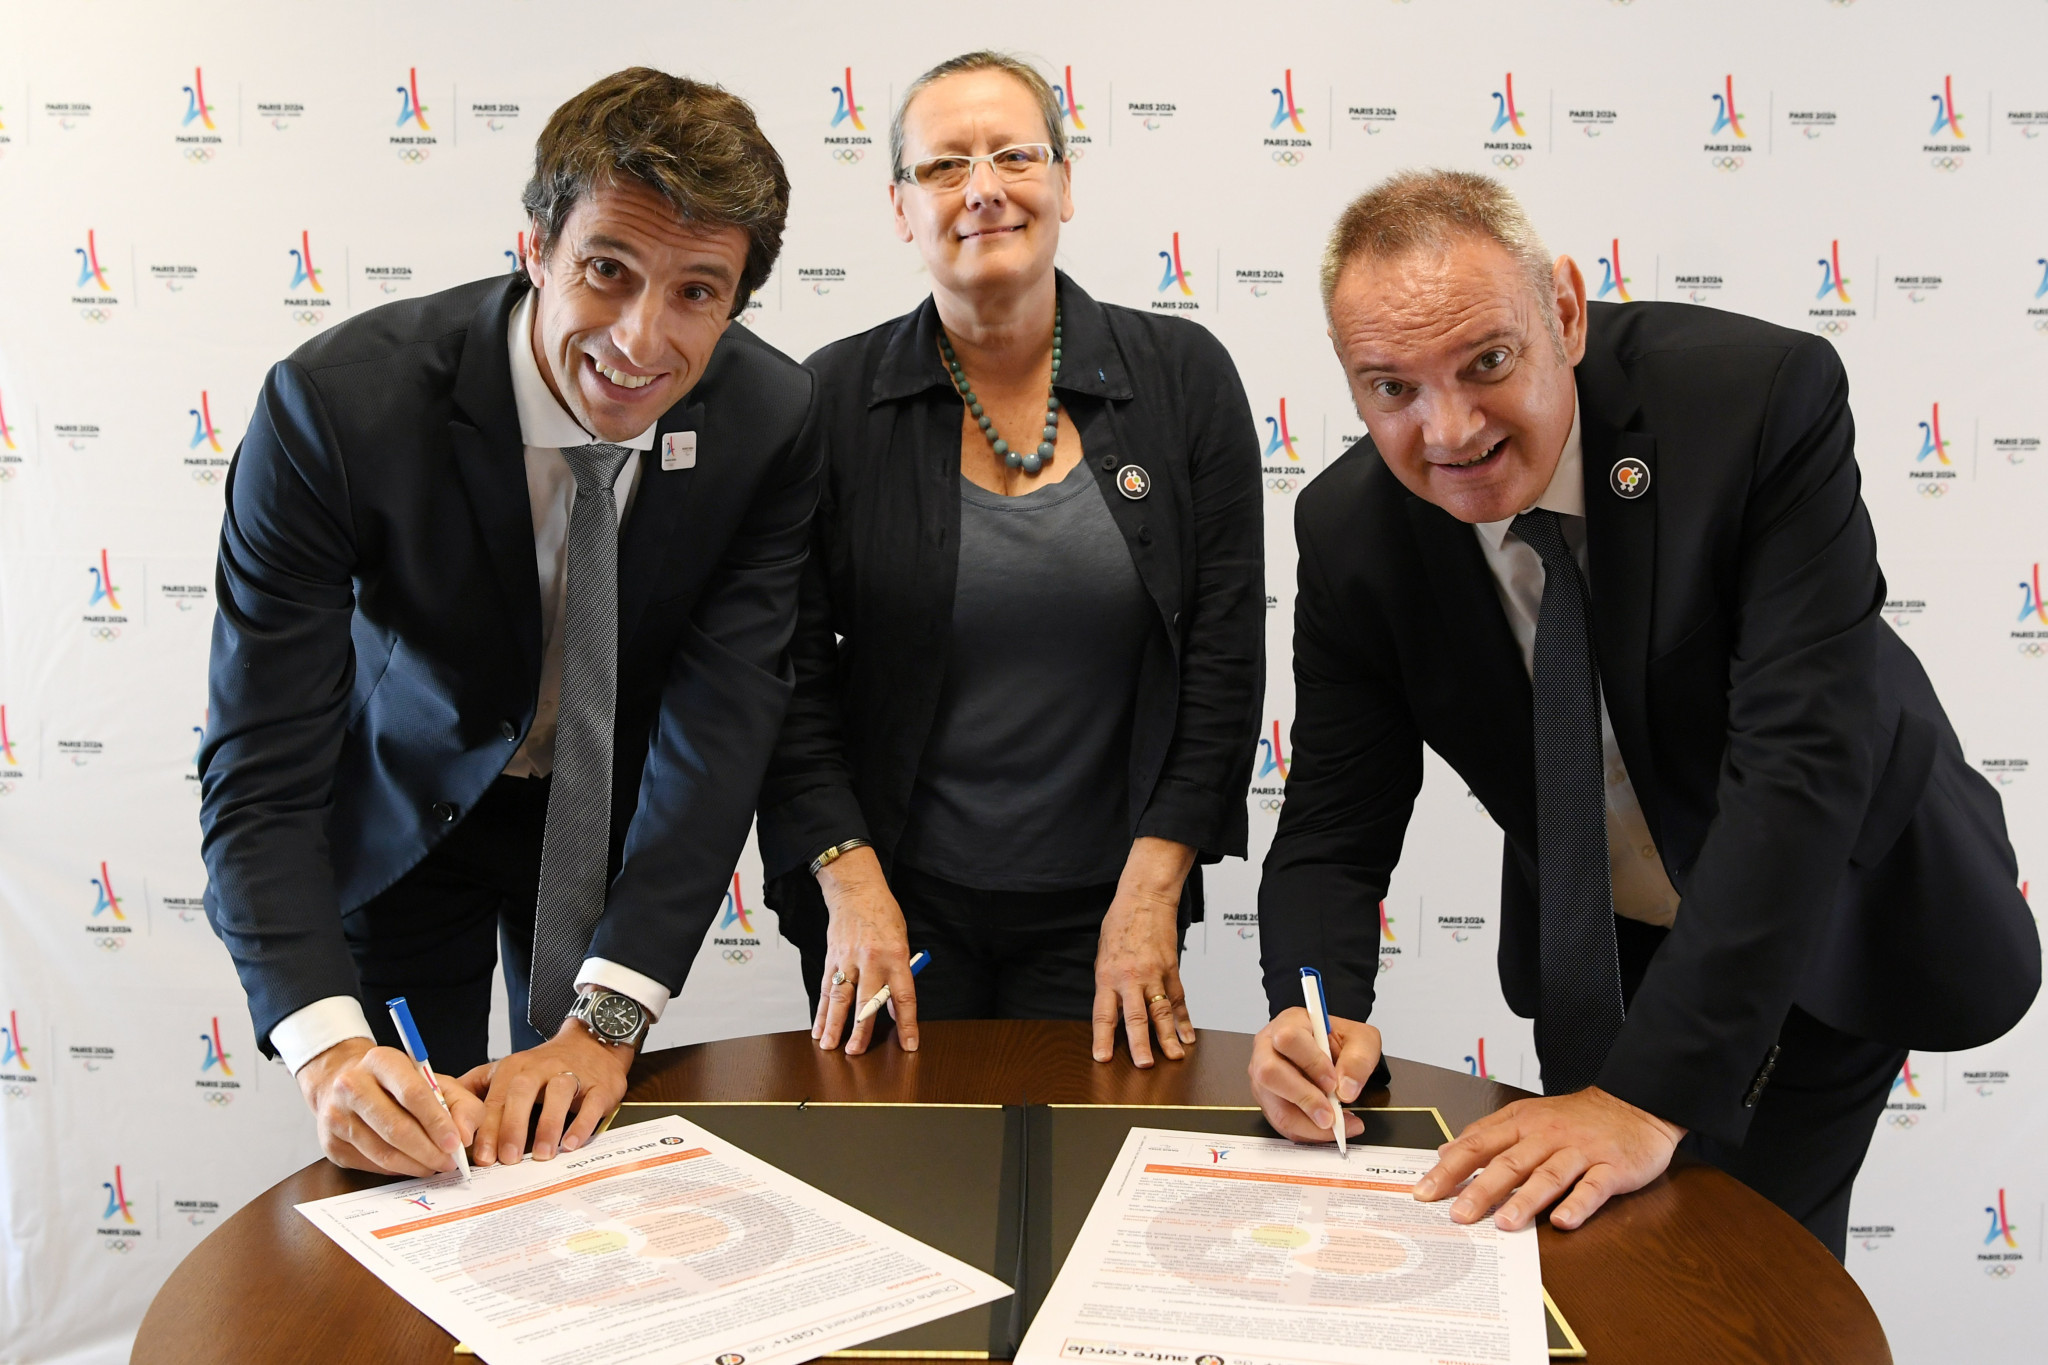 Paris 2024 President Estanguet signs LGBT+ charter